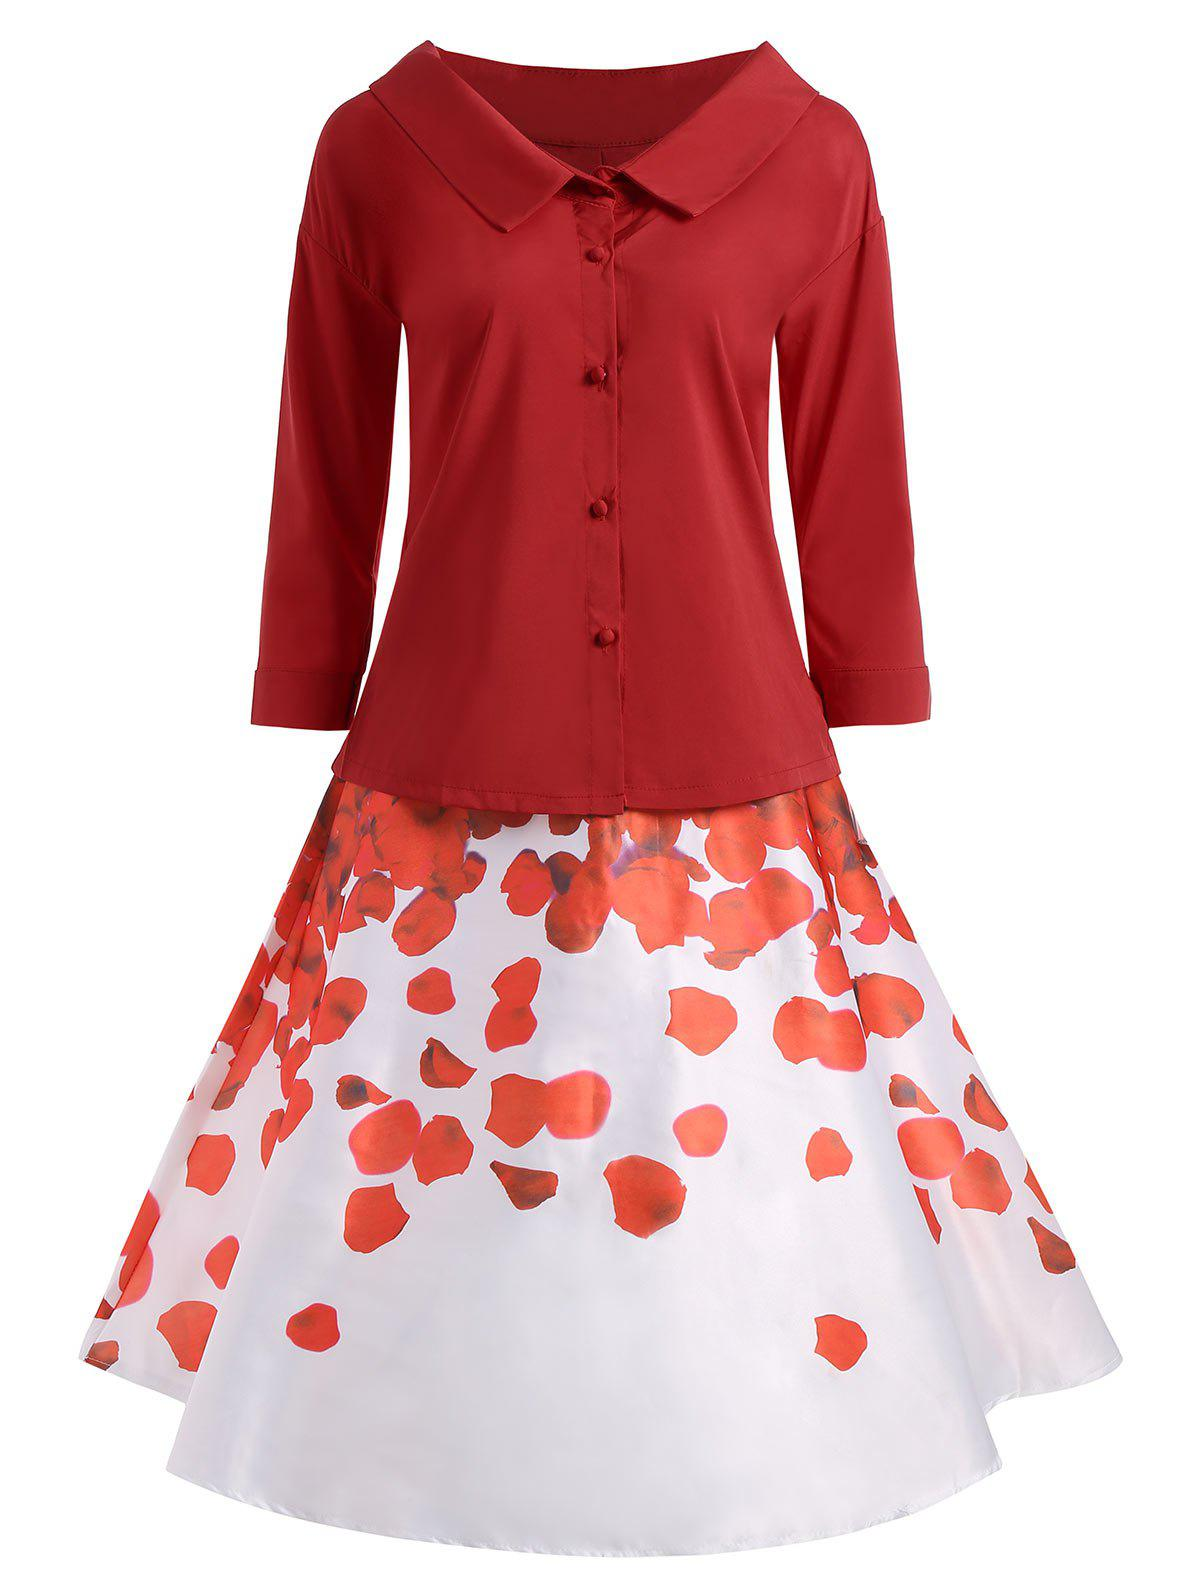 Button Up Blouse with Printed Skirt - RED XL